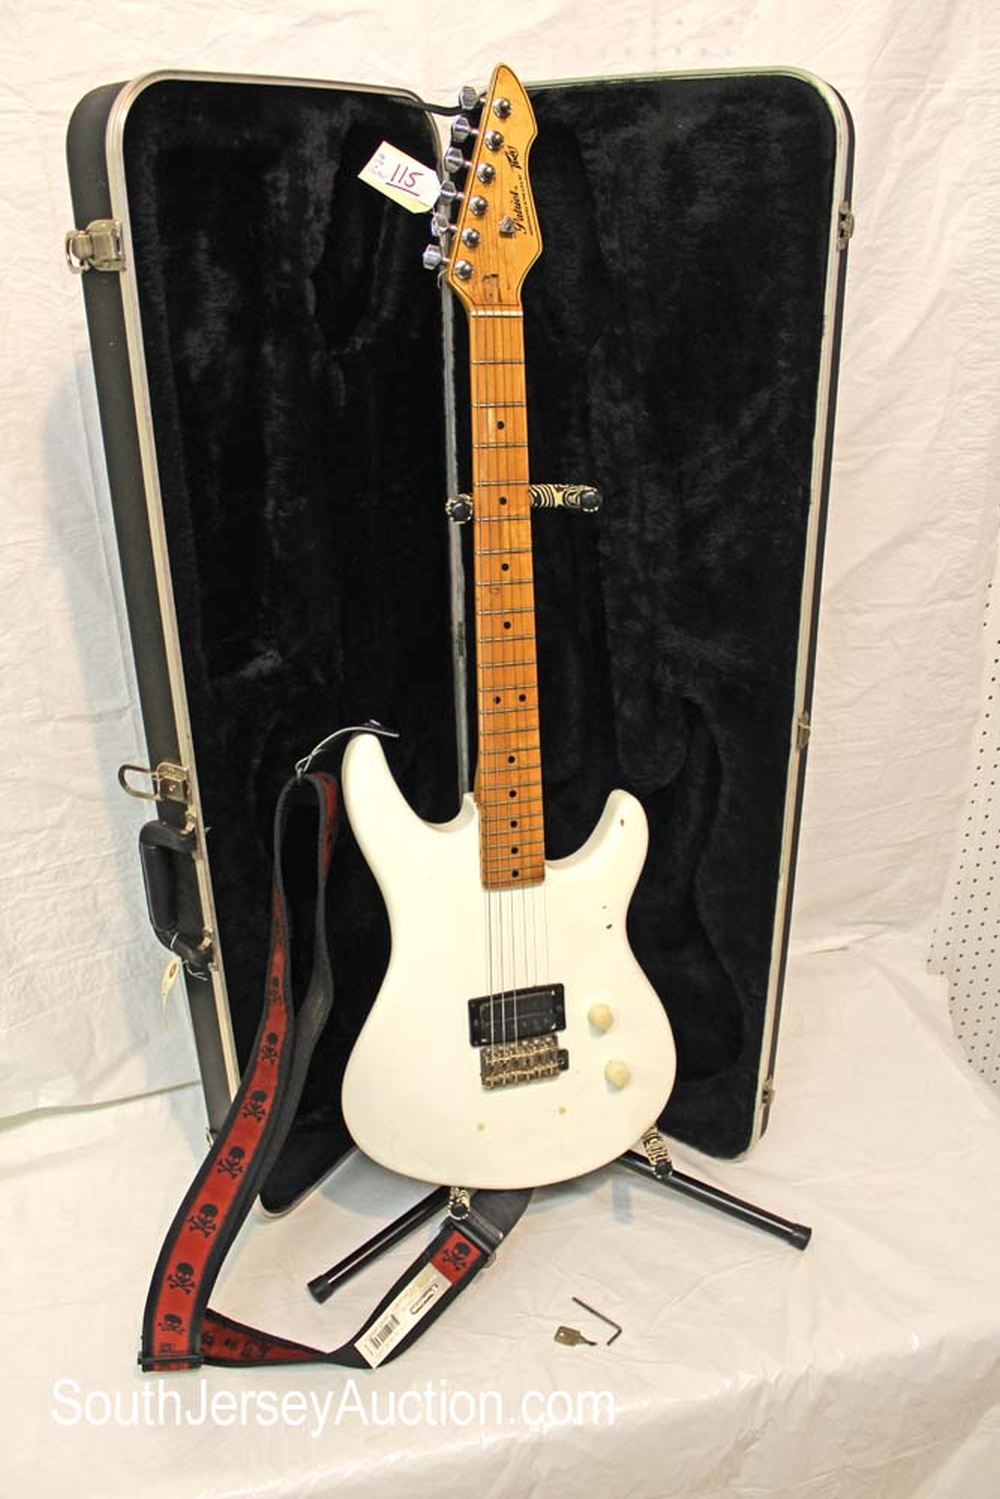 1979 Peavey Patriot guitar, made in the US, with skull strap, s/n 02783930, considered a player with hard shell Peavey case, case key and wrench